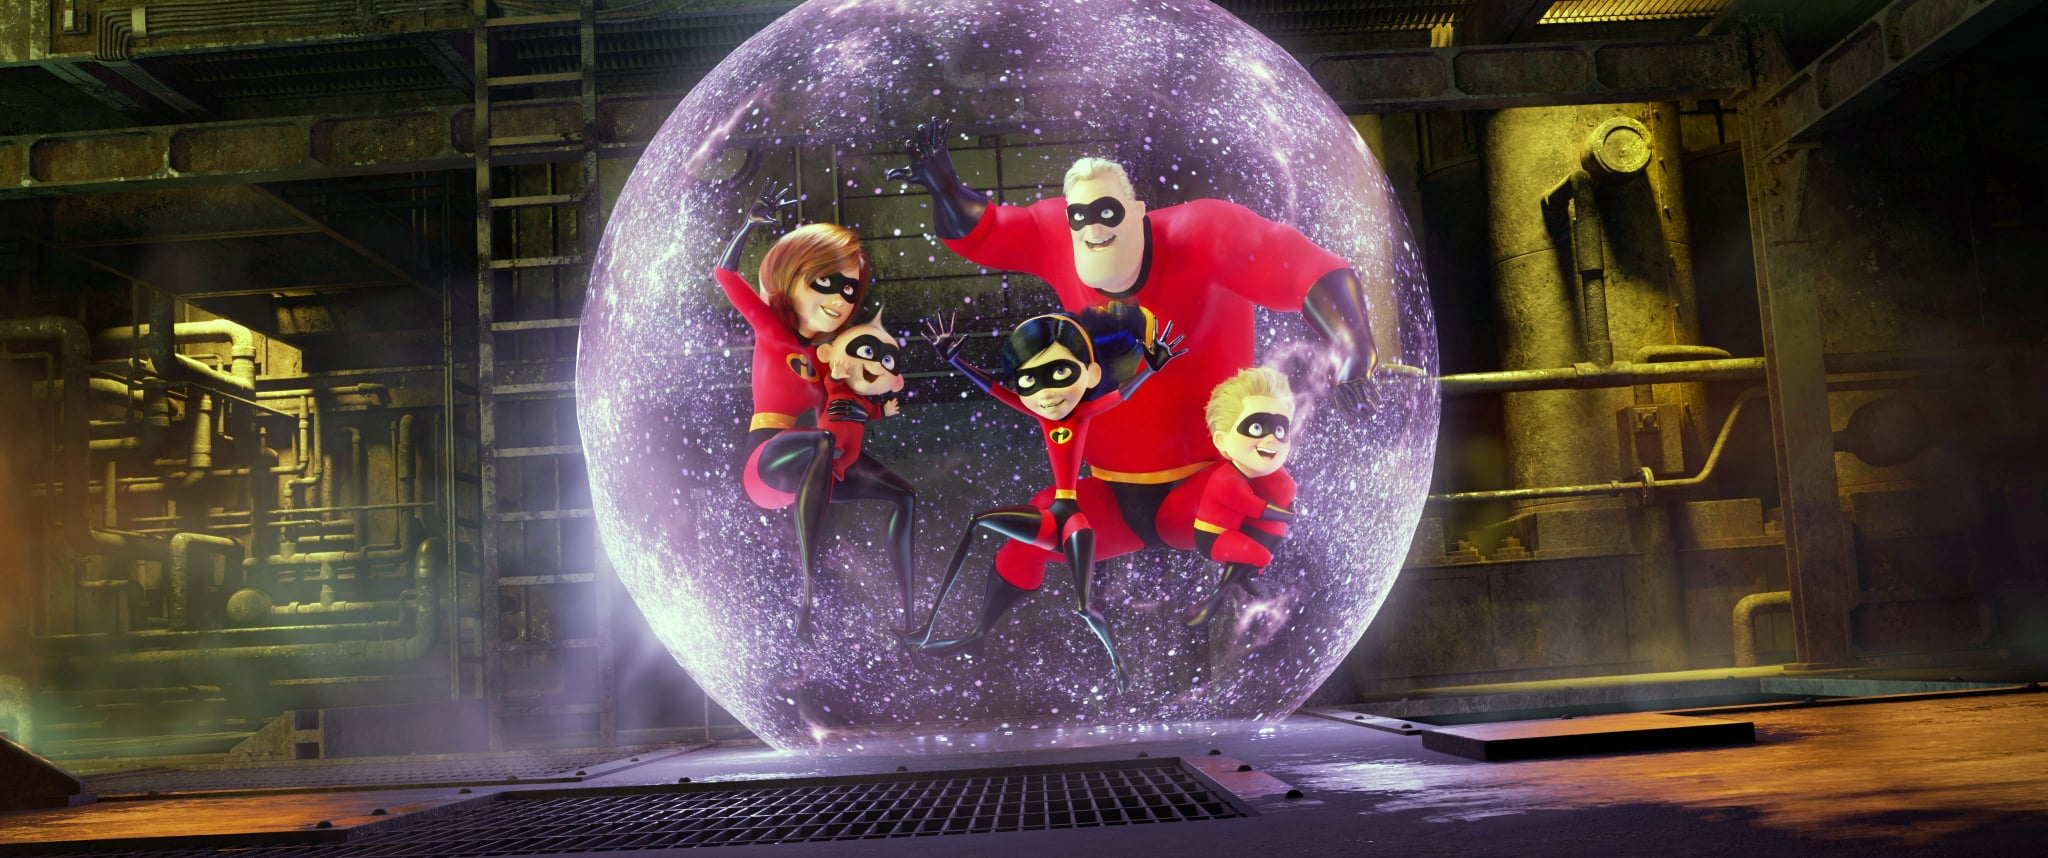 INCREDIBLES 2, from left: Elastigirl (voice: Holly Huntger), Jack-Jack Parr, Violet Parr (voice: Sarah Vowell), Bob Parr (voice: Craig T. Nelson), Dash (voice: Huck Milner), 2018.  Walt Disney Studios Motion Pictures /Courtesy Everett Collection